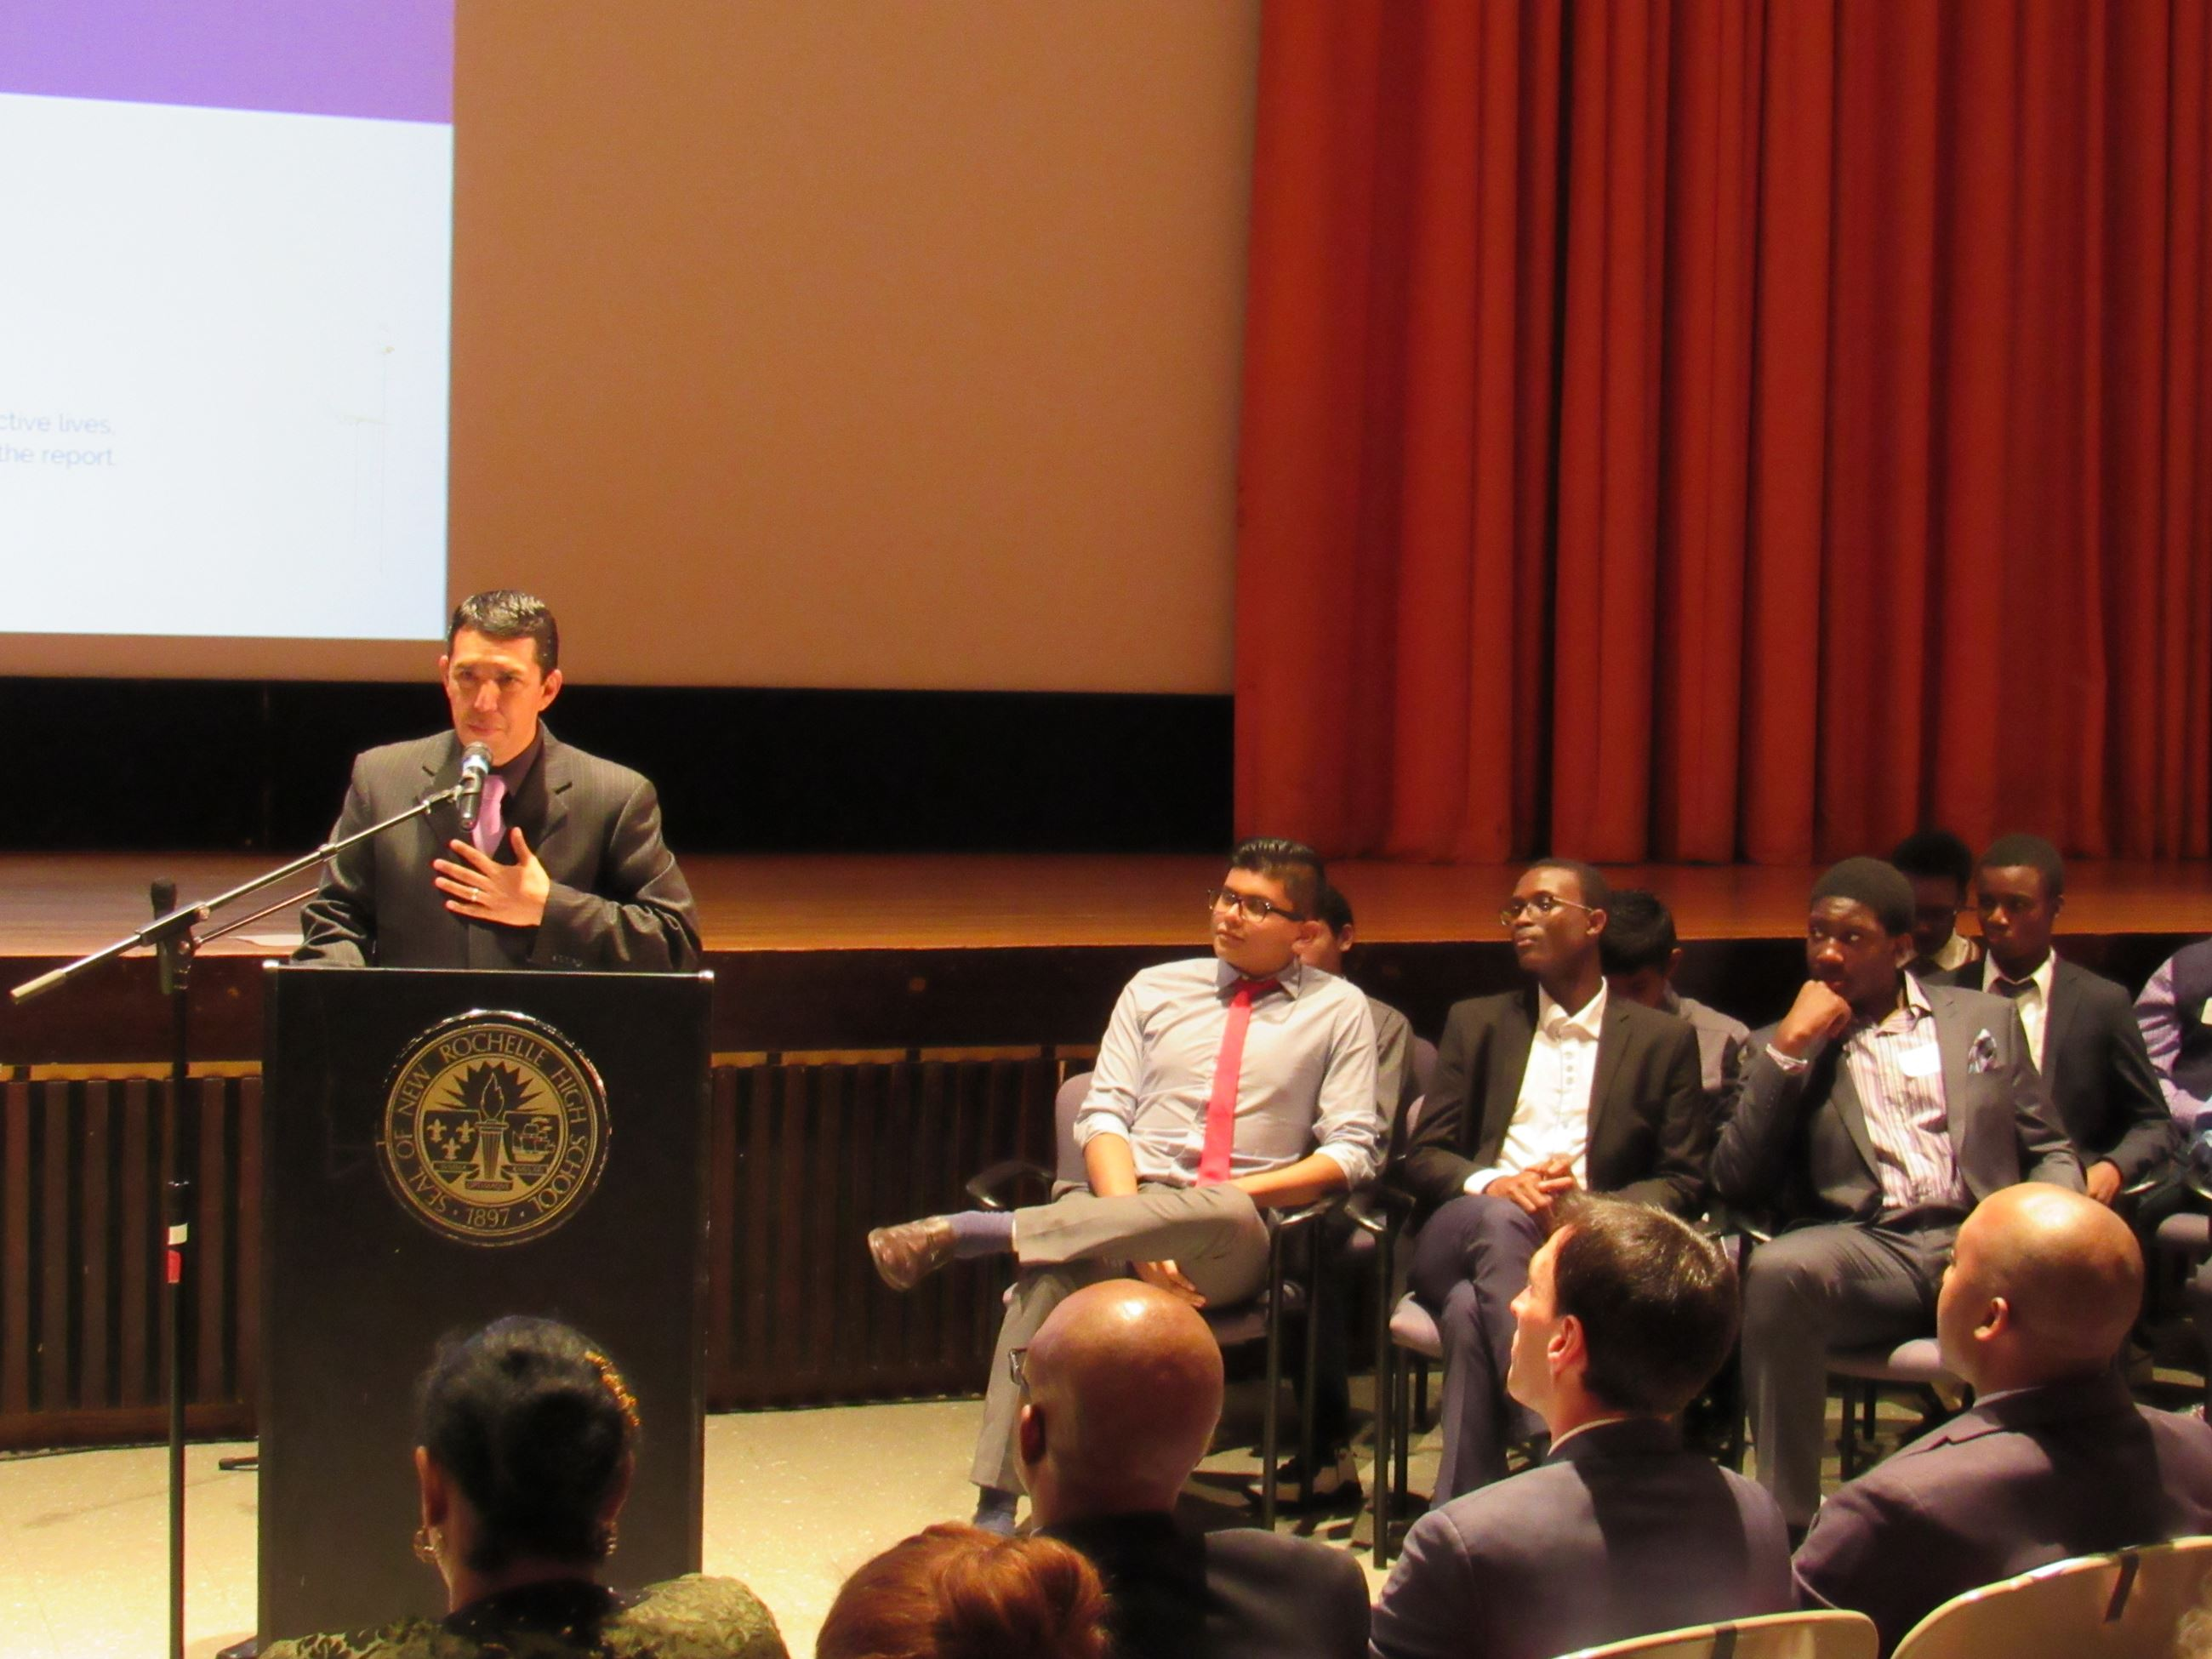 My Brother's Keeper Action Plan Event